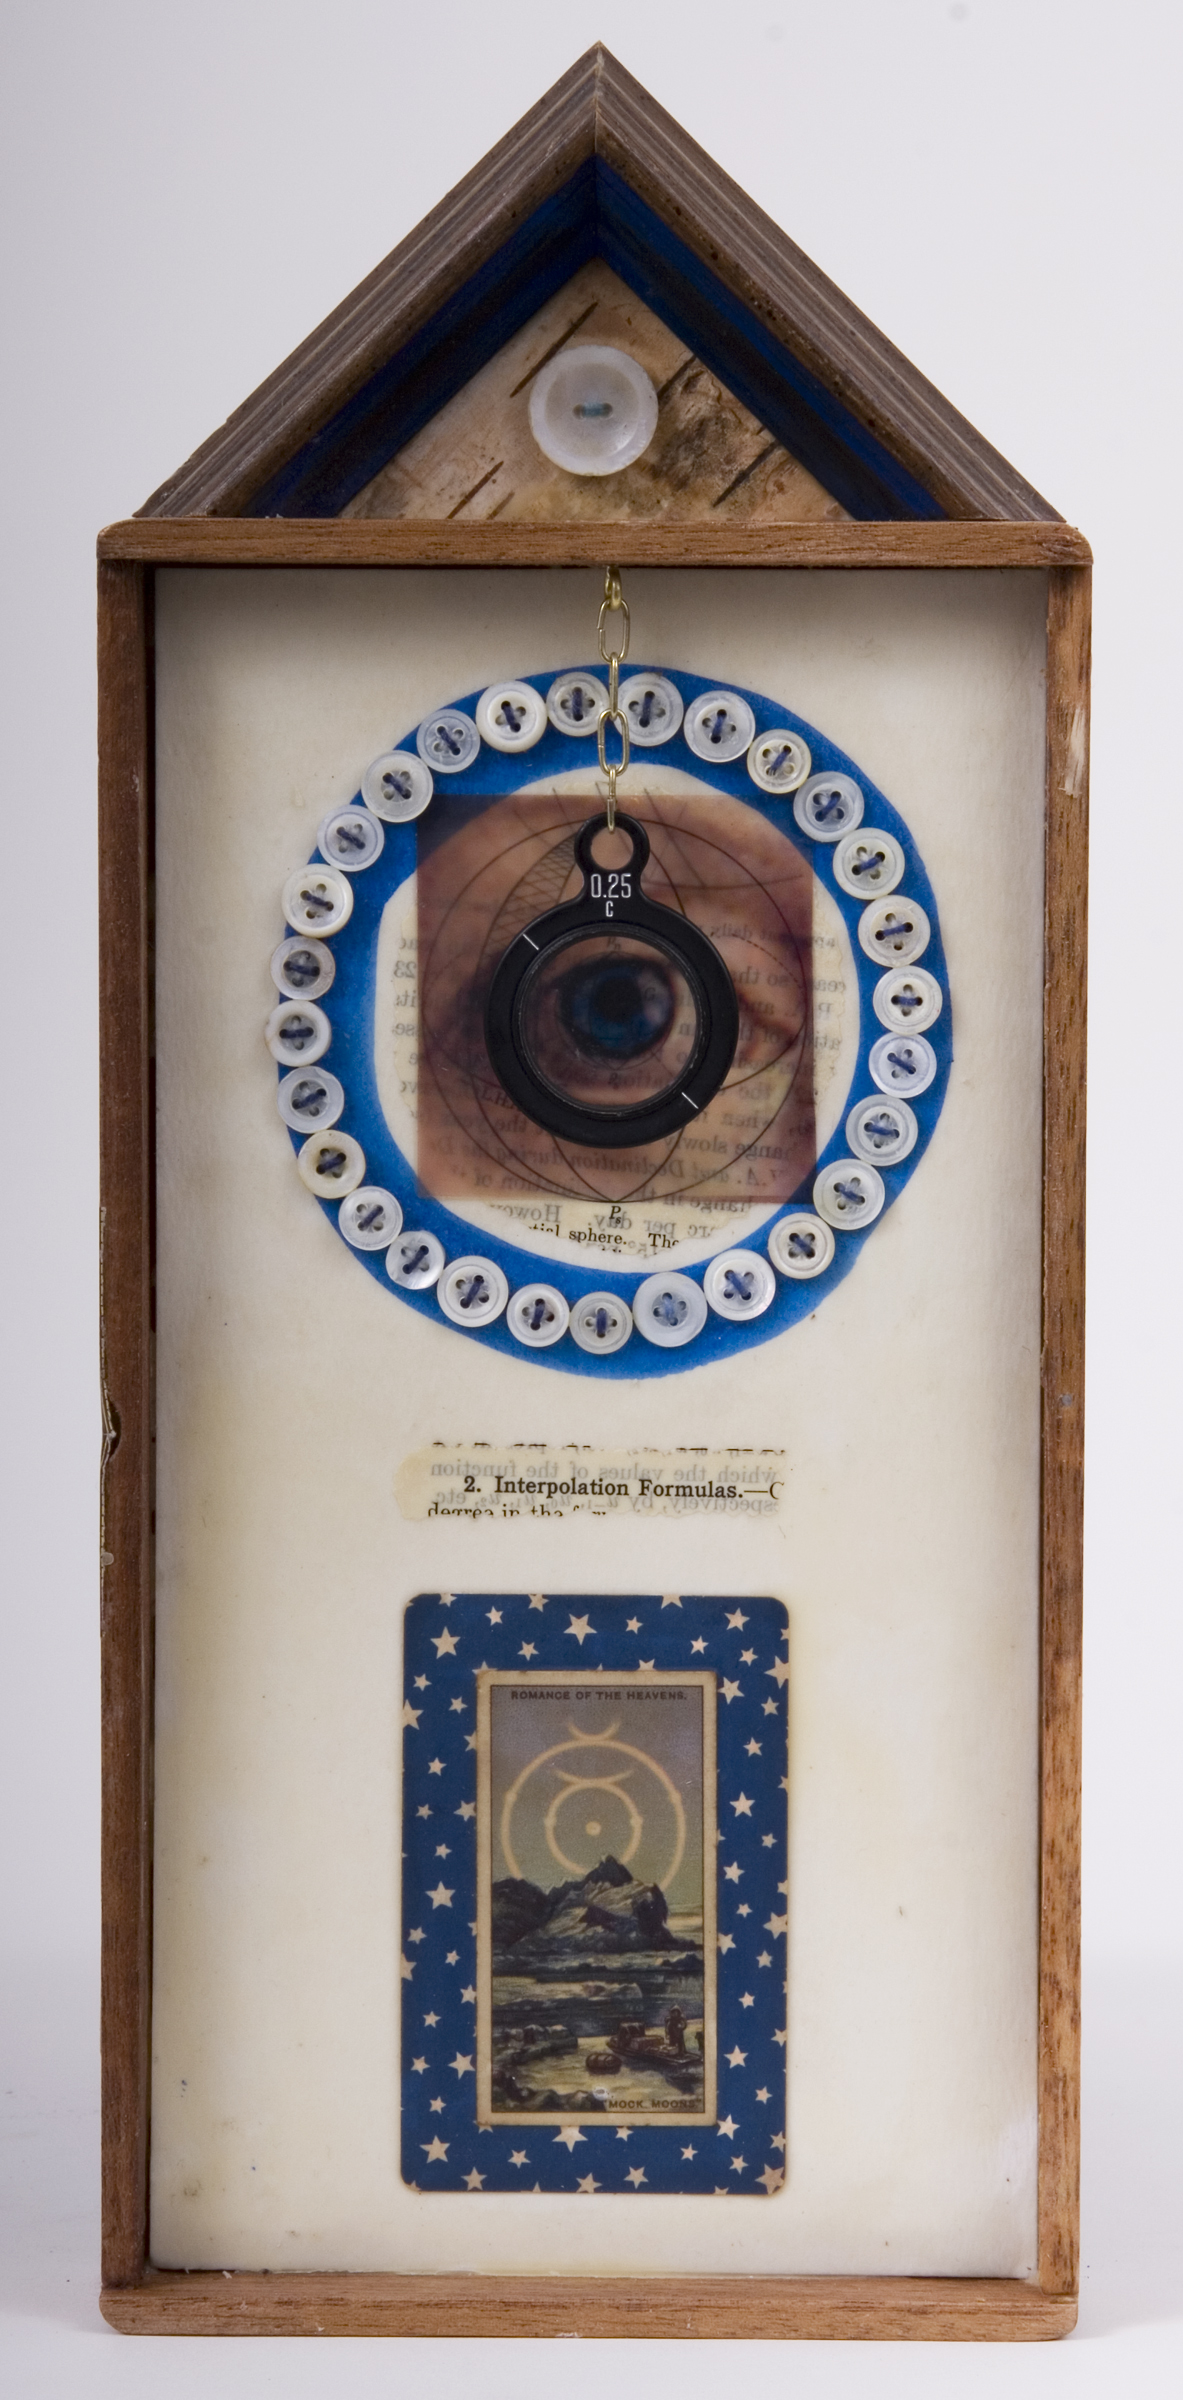 """2. Interpolation Formulas\""